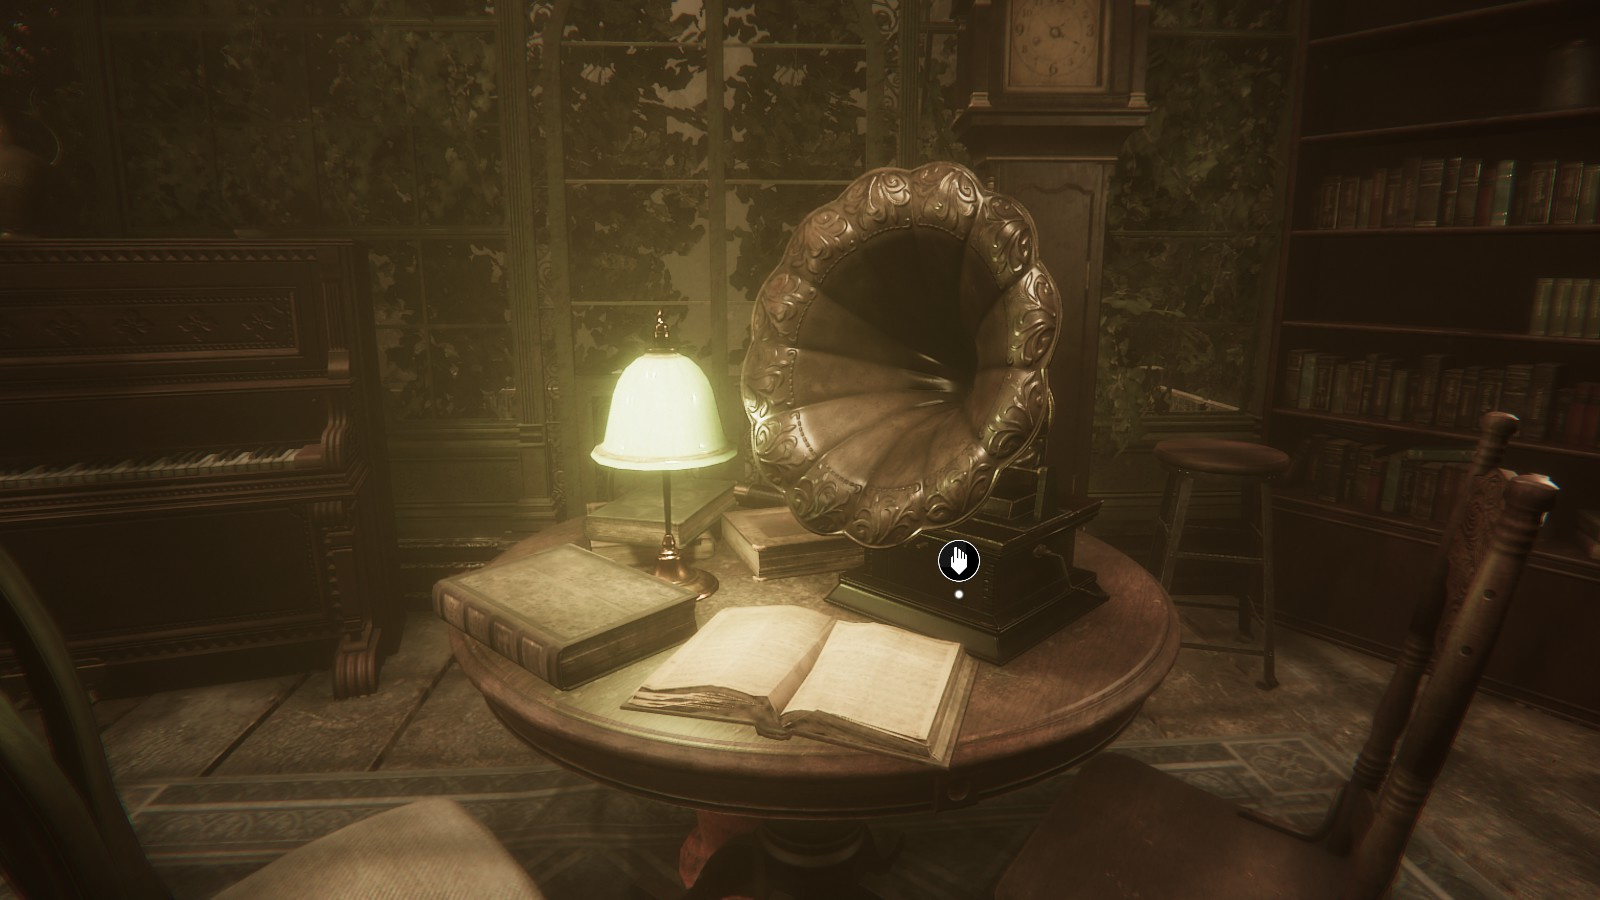 Phonographs allow you to save your game as well as provide clues to the mysterious ongoings at Sker Hotel.